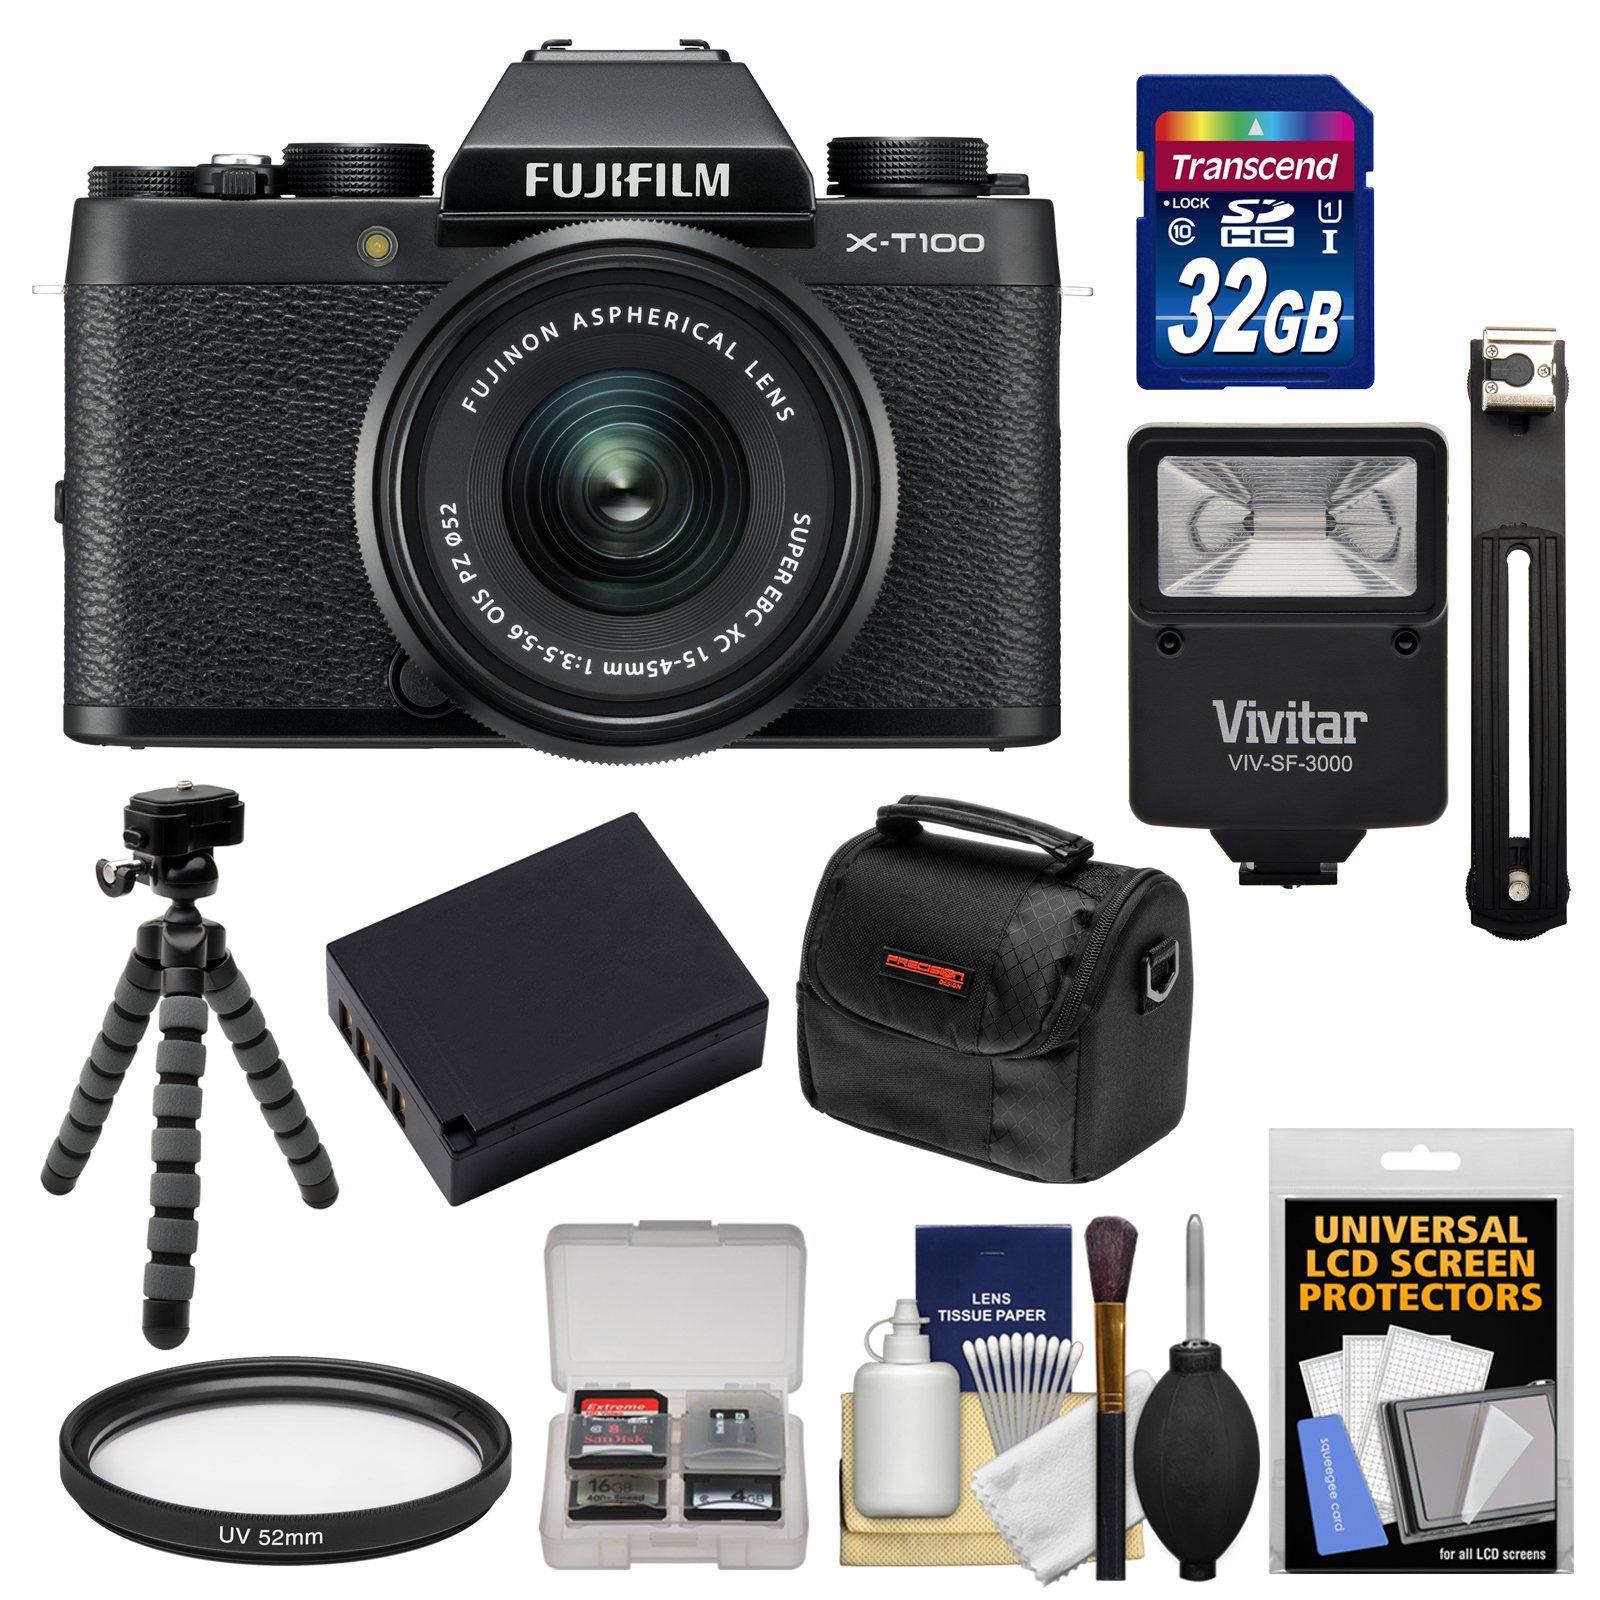 Fujifilm X-T100 Digital Camera & 15-45mm XC OIS PZ Lens (Black) with 32GB Card + Battery + Tripod + Flash + Case + Kit